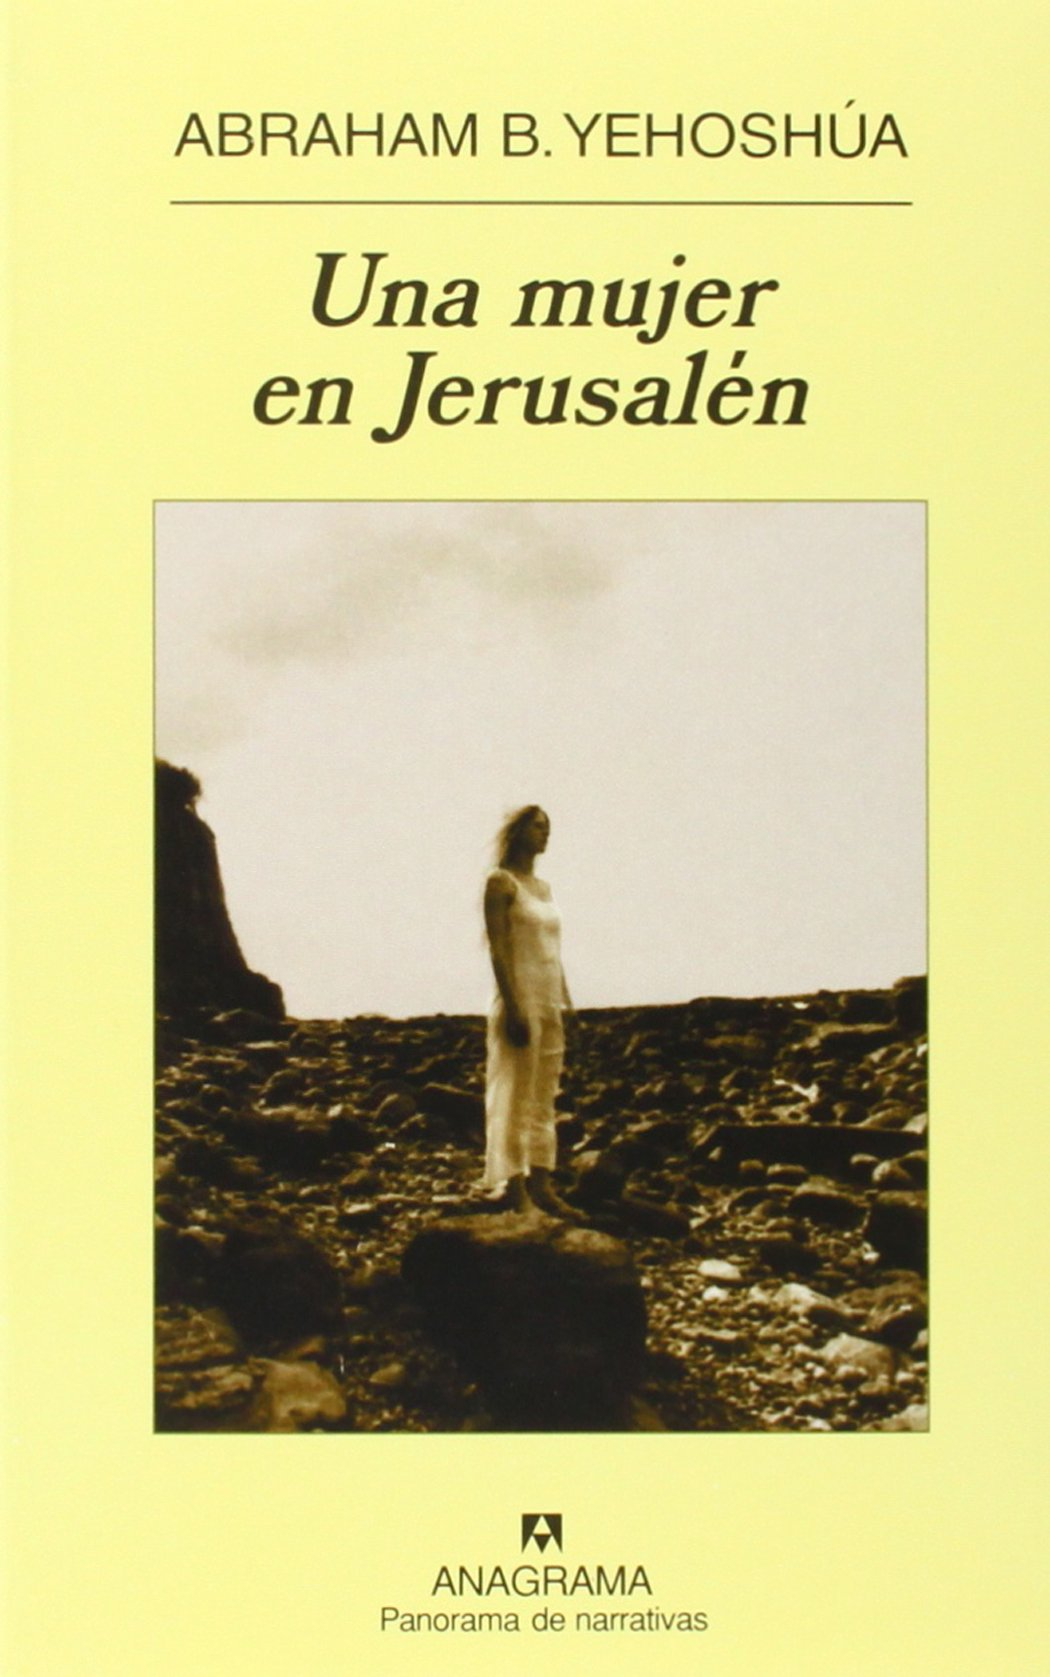 Una mujer en Jerusalen (Spanish Edition): Abraham B. Yehoshua: 9788433974822: Amazon.com: Books